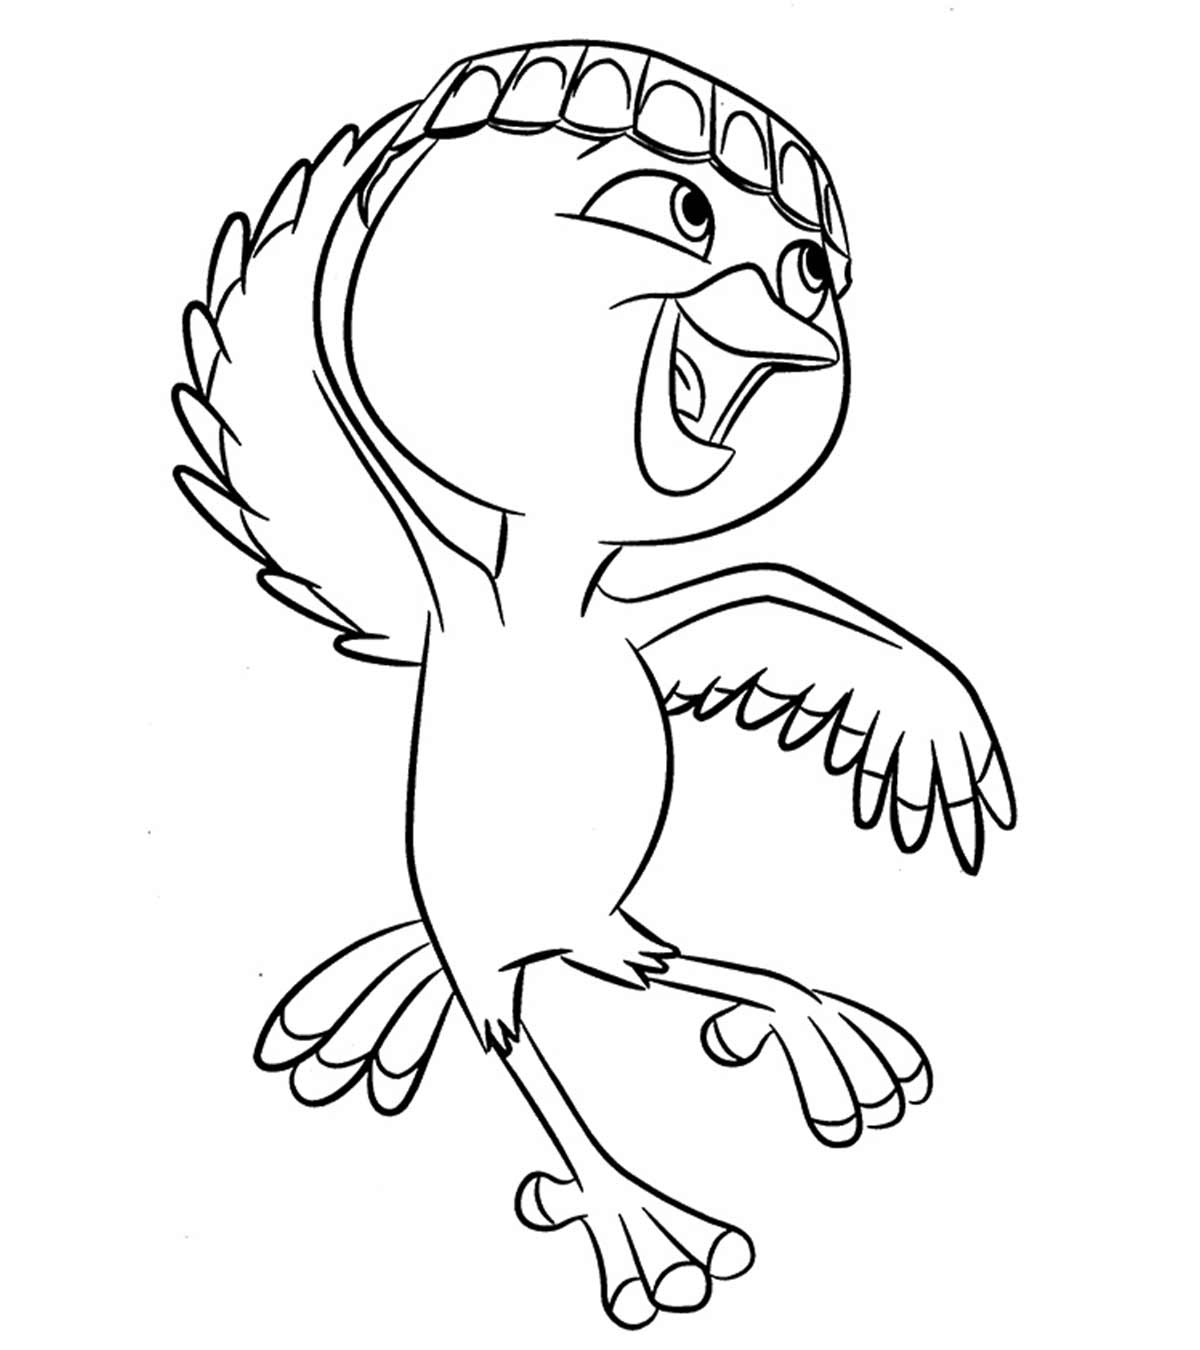 free rio the movie coloring pages | Disney Coloring Pages - MomJunction